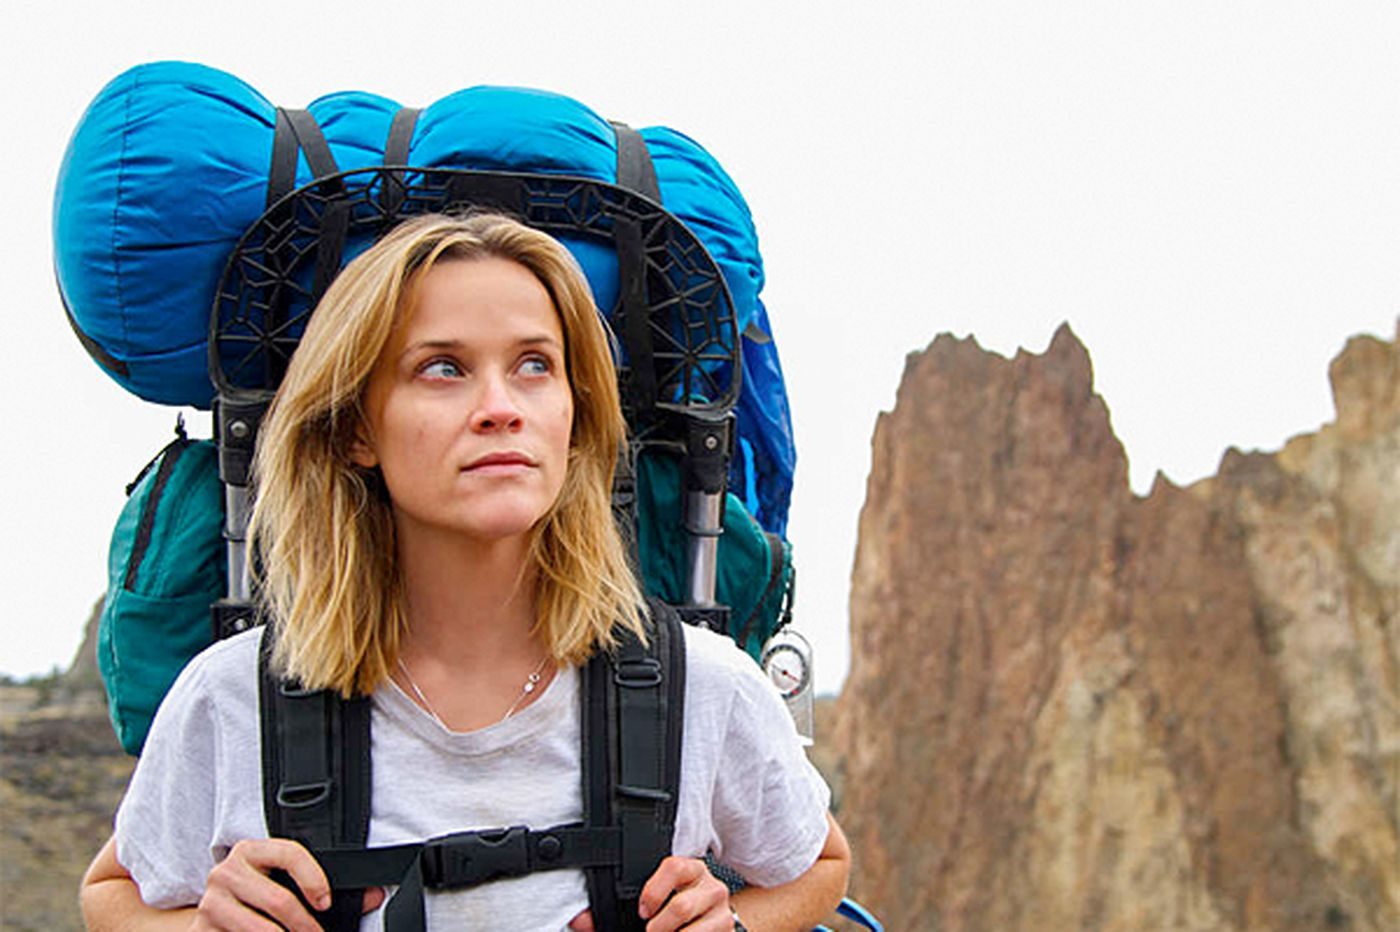 Reese Witherspoon shines in 'Wild'